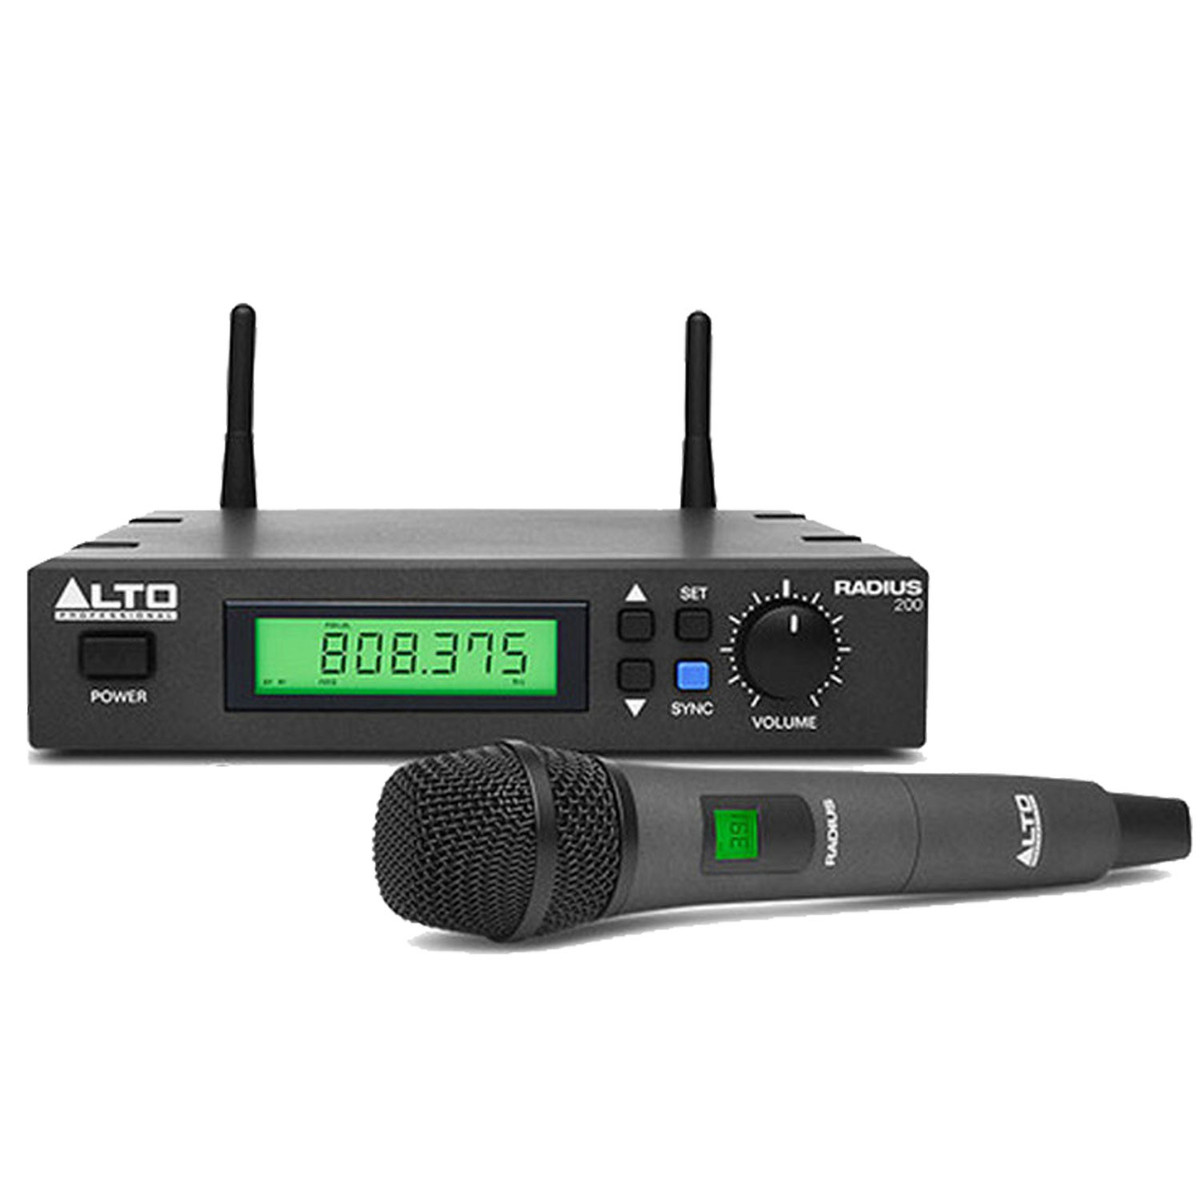 Alt Alto Alto Radius 200 Wireless Dynamic Handheld Microphone